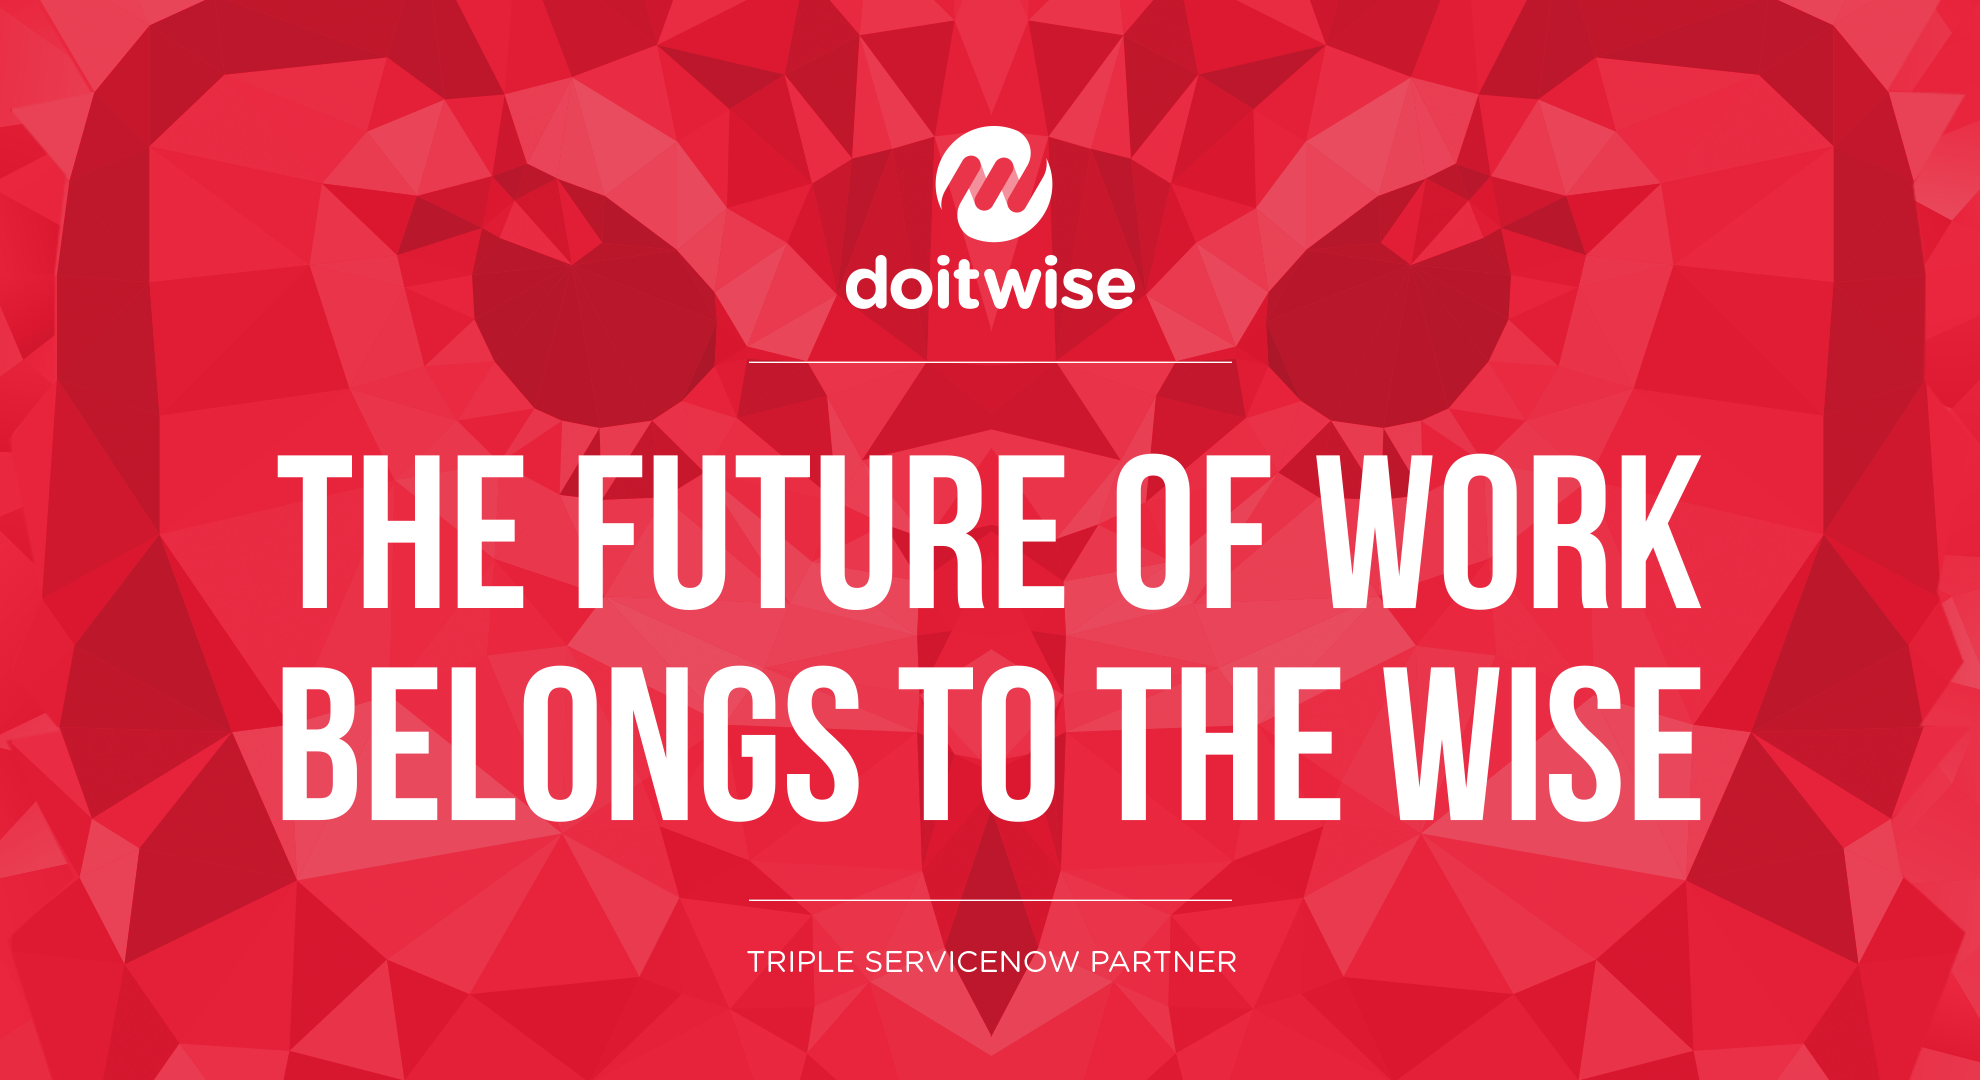 Do IT Wise at The Future of Work Tour in Zurich/Switzerland